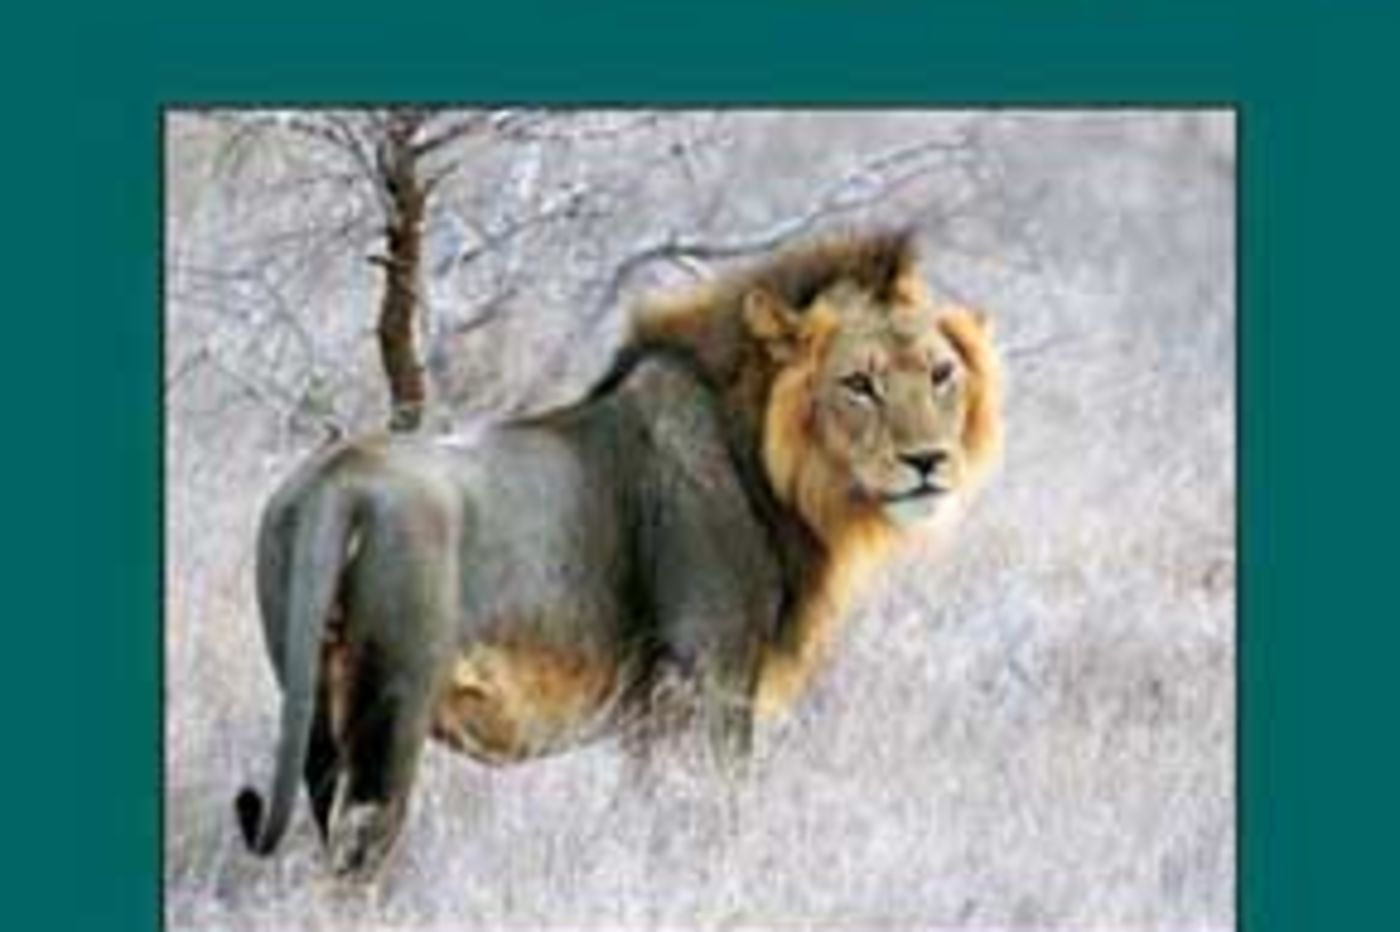 Cover of Journal of Mammology, Volume 87, Number 2, April 2016. Shows an image of a lion on the cover.